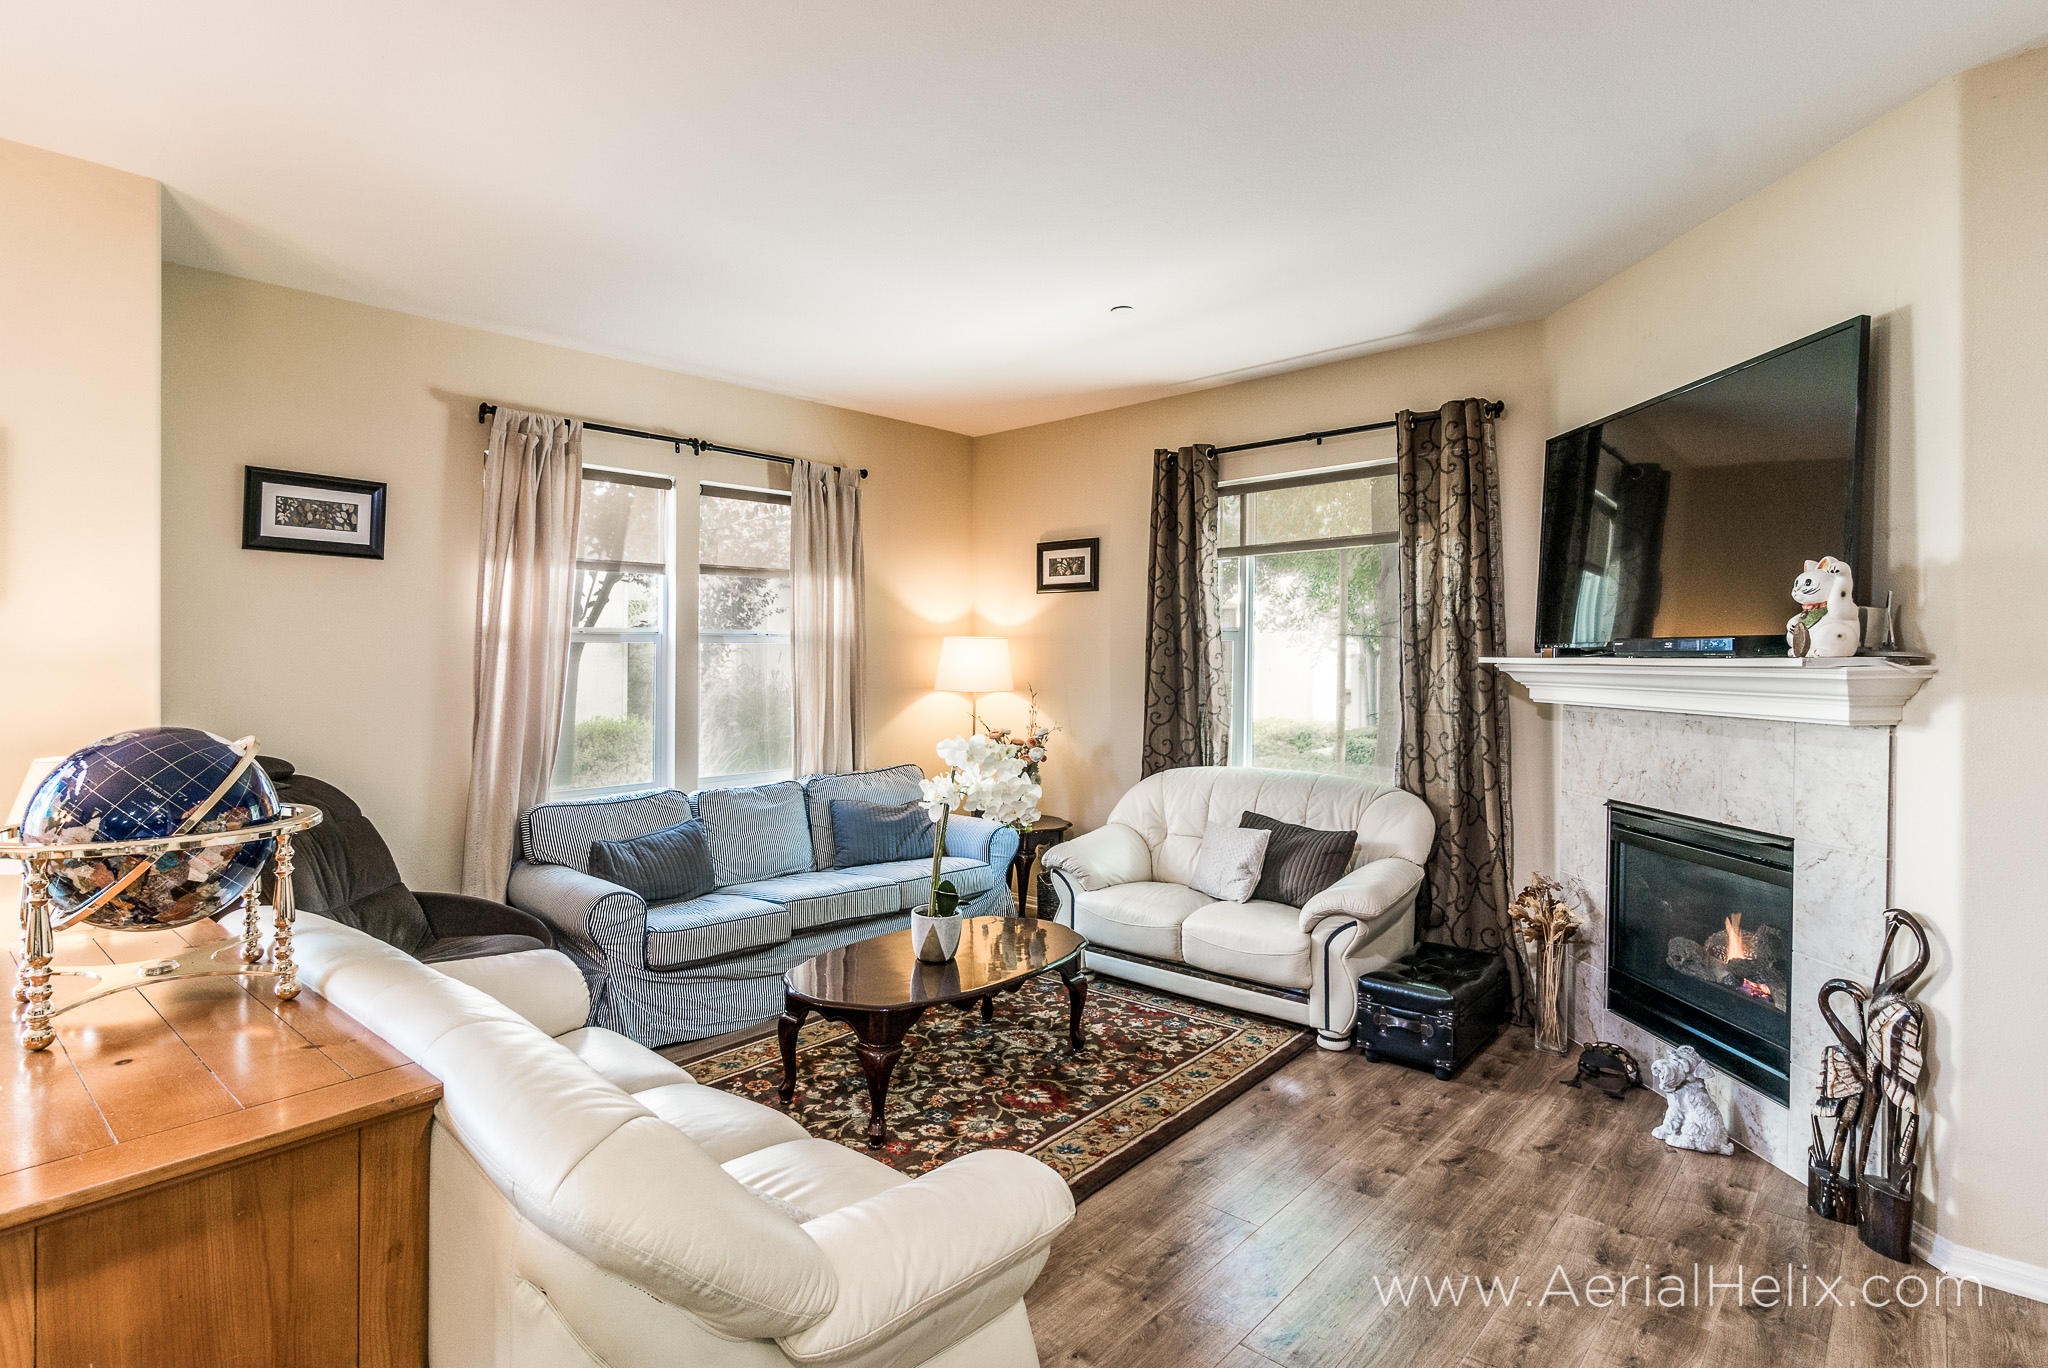 HELIX Morhouse Ave - Real-estate-photographer-17.jpg